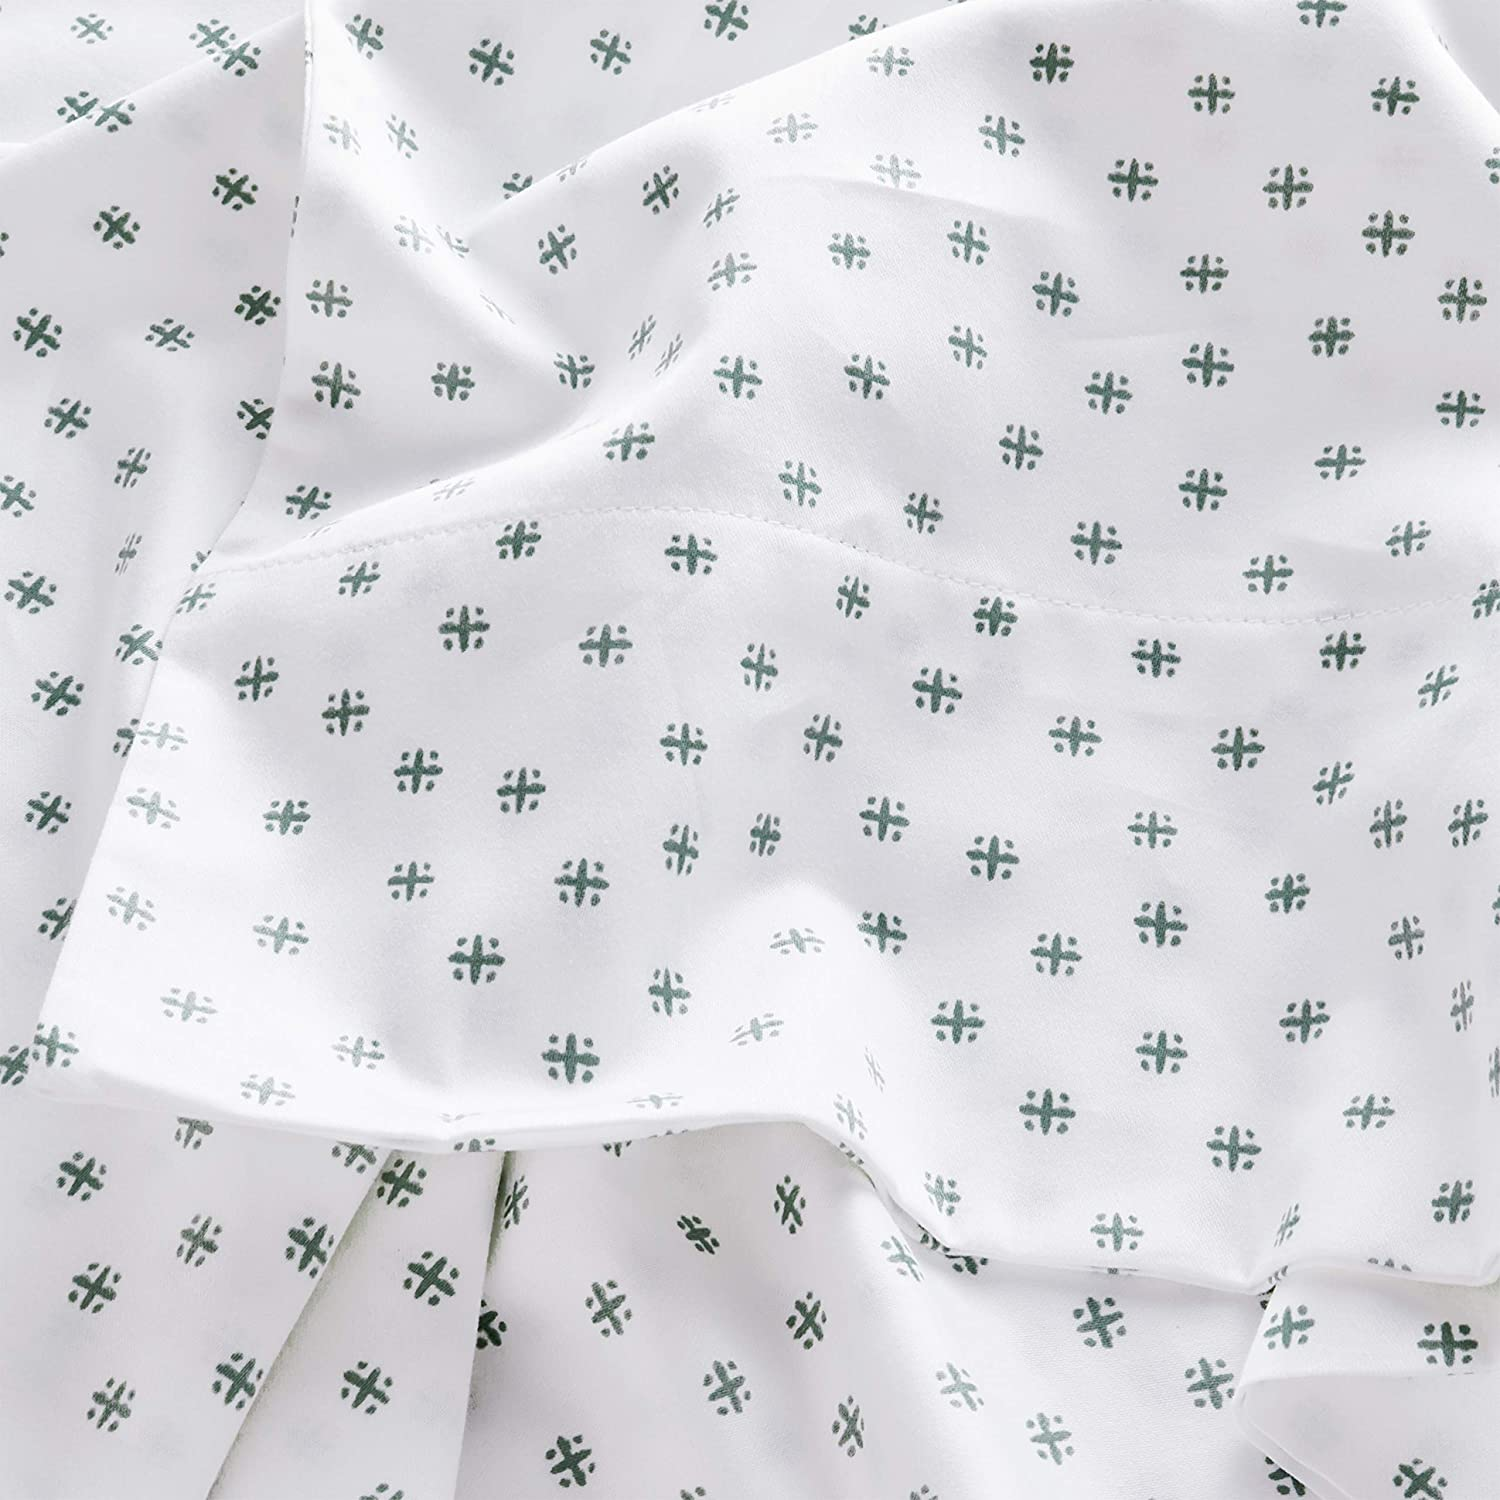 Stone /& Beam Starburst 100/% Cotton Sateen Pillowcase Set King Set of 2 Oasis